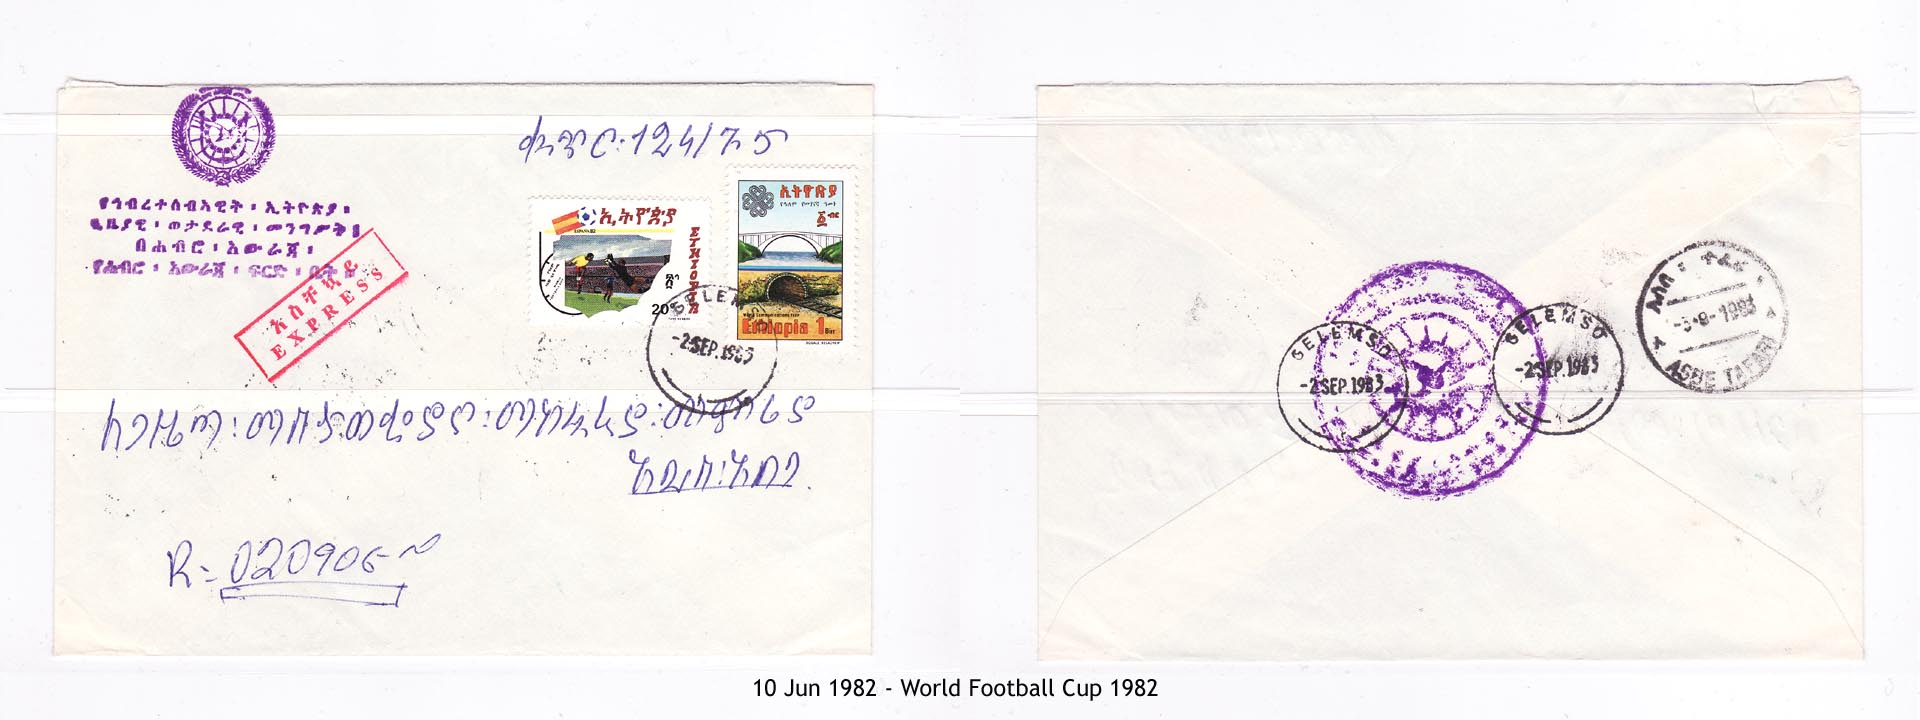 19820610 - World Football Cup 1982